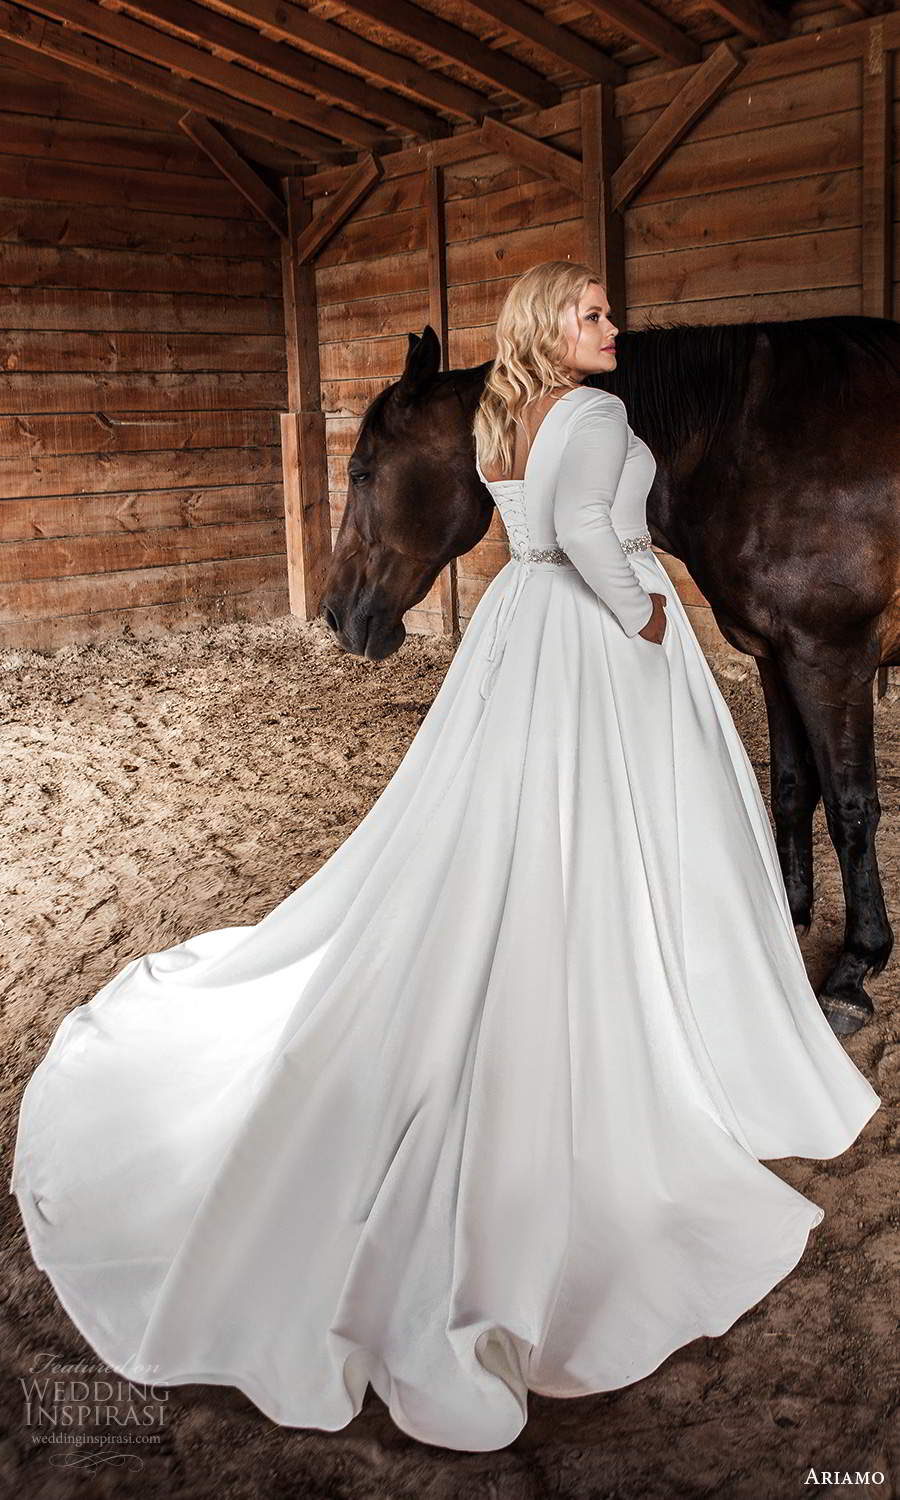 ariamo 2021 plus bridal long sleeves jewel neckline clean minimalist a line ball gown wedding dress chapel train (1) bv